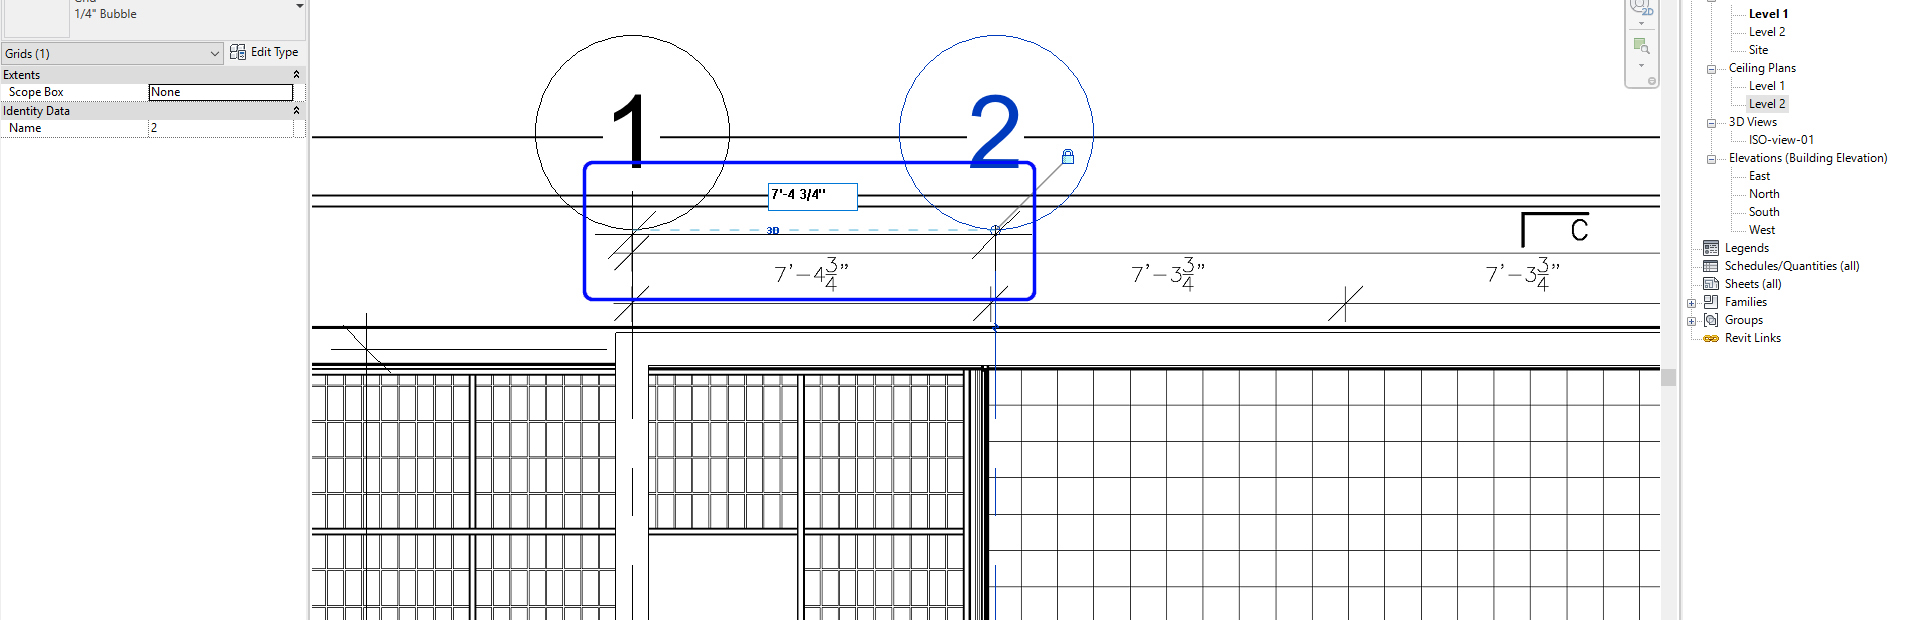 It shows the grid dimensions.